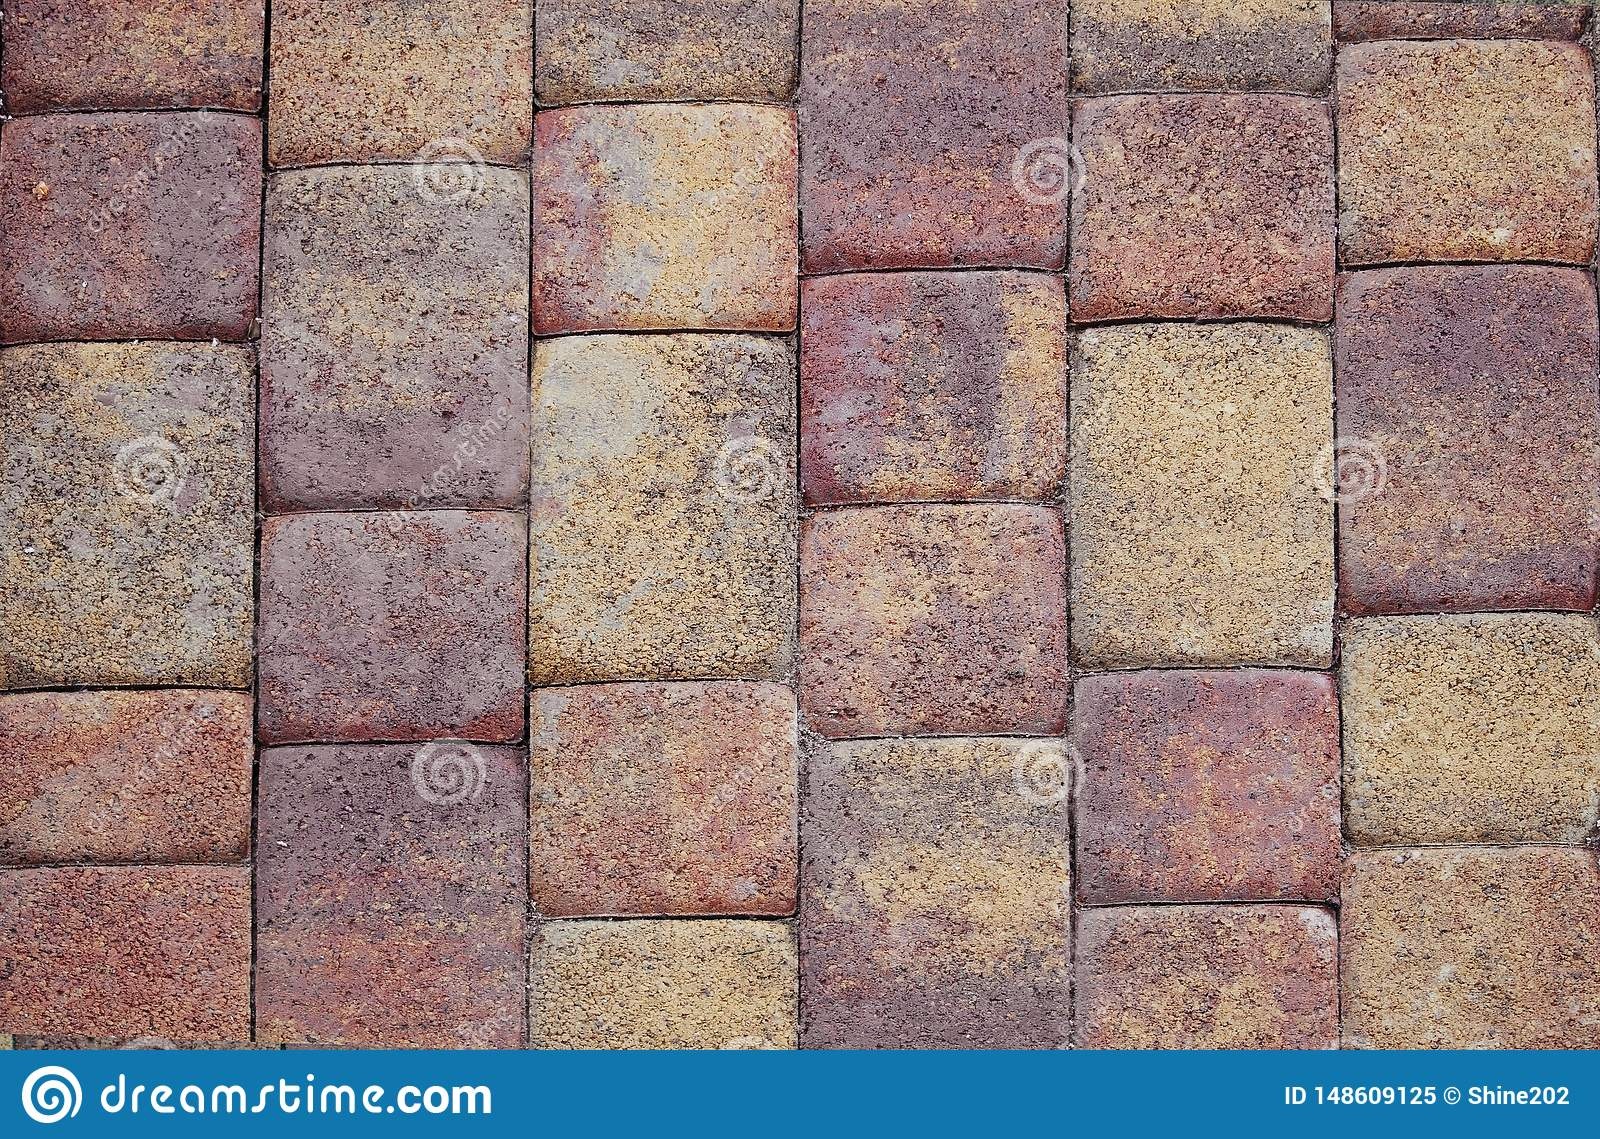 Textured colored tiles made of natural stone